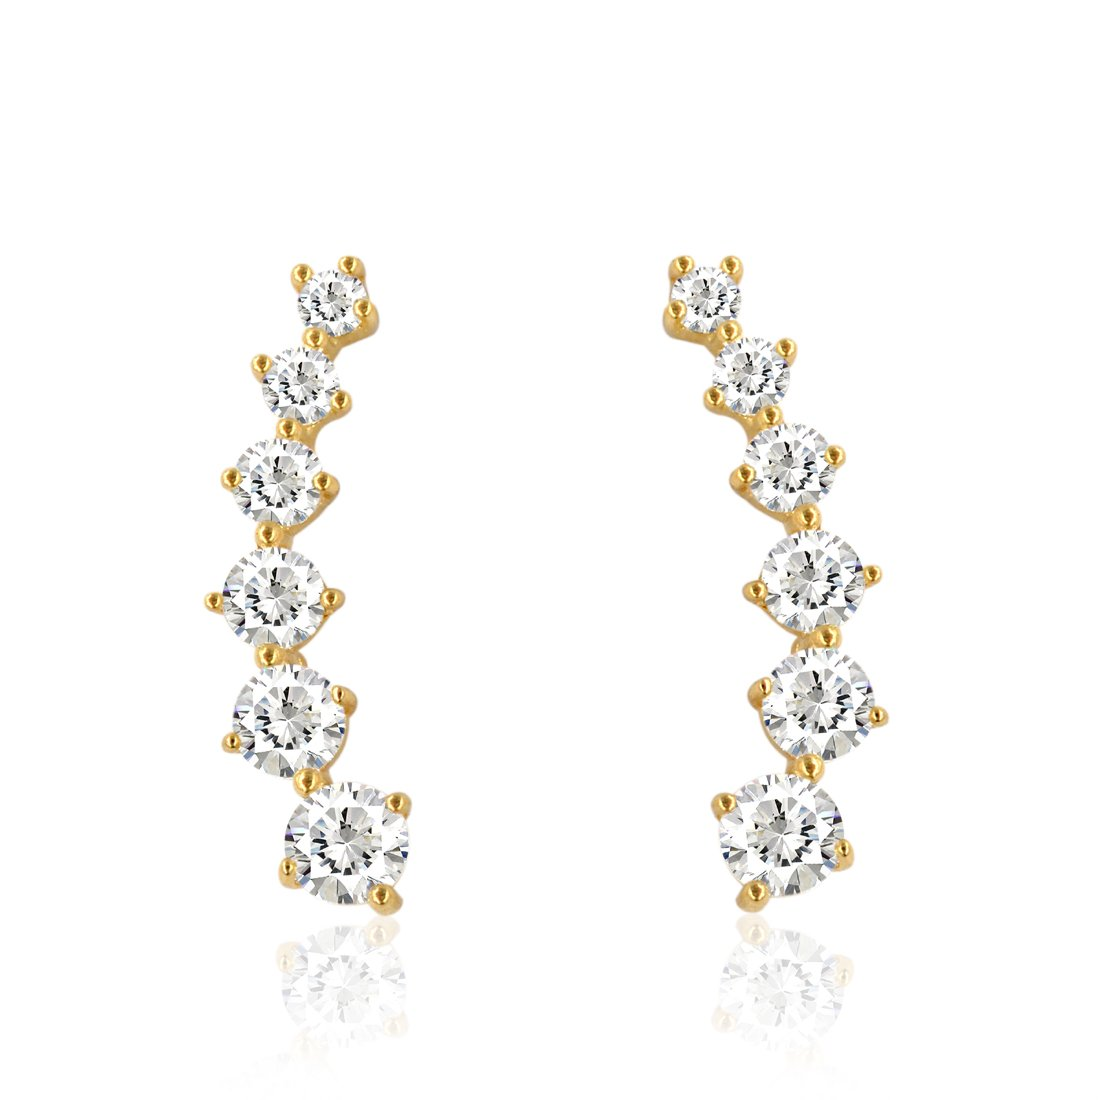 10K Gold Ear Crawler/ Climber Cuff CZ Earrings